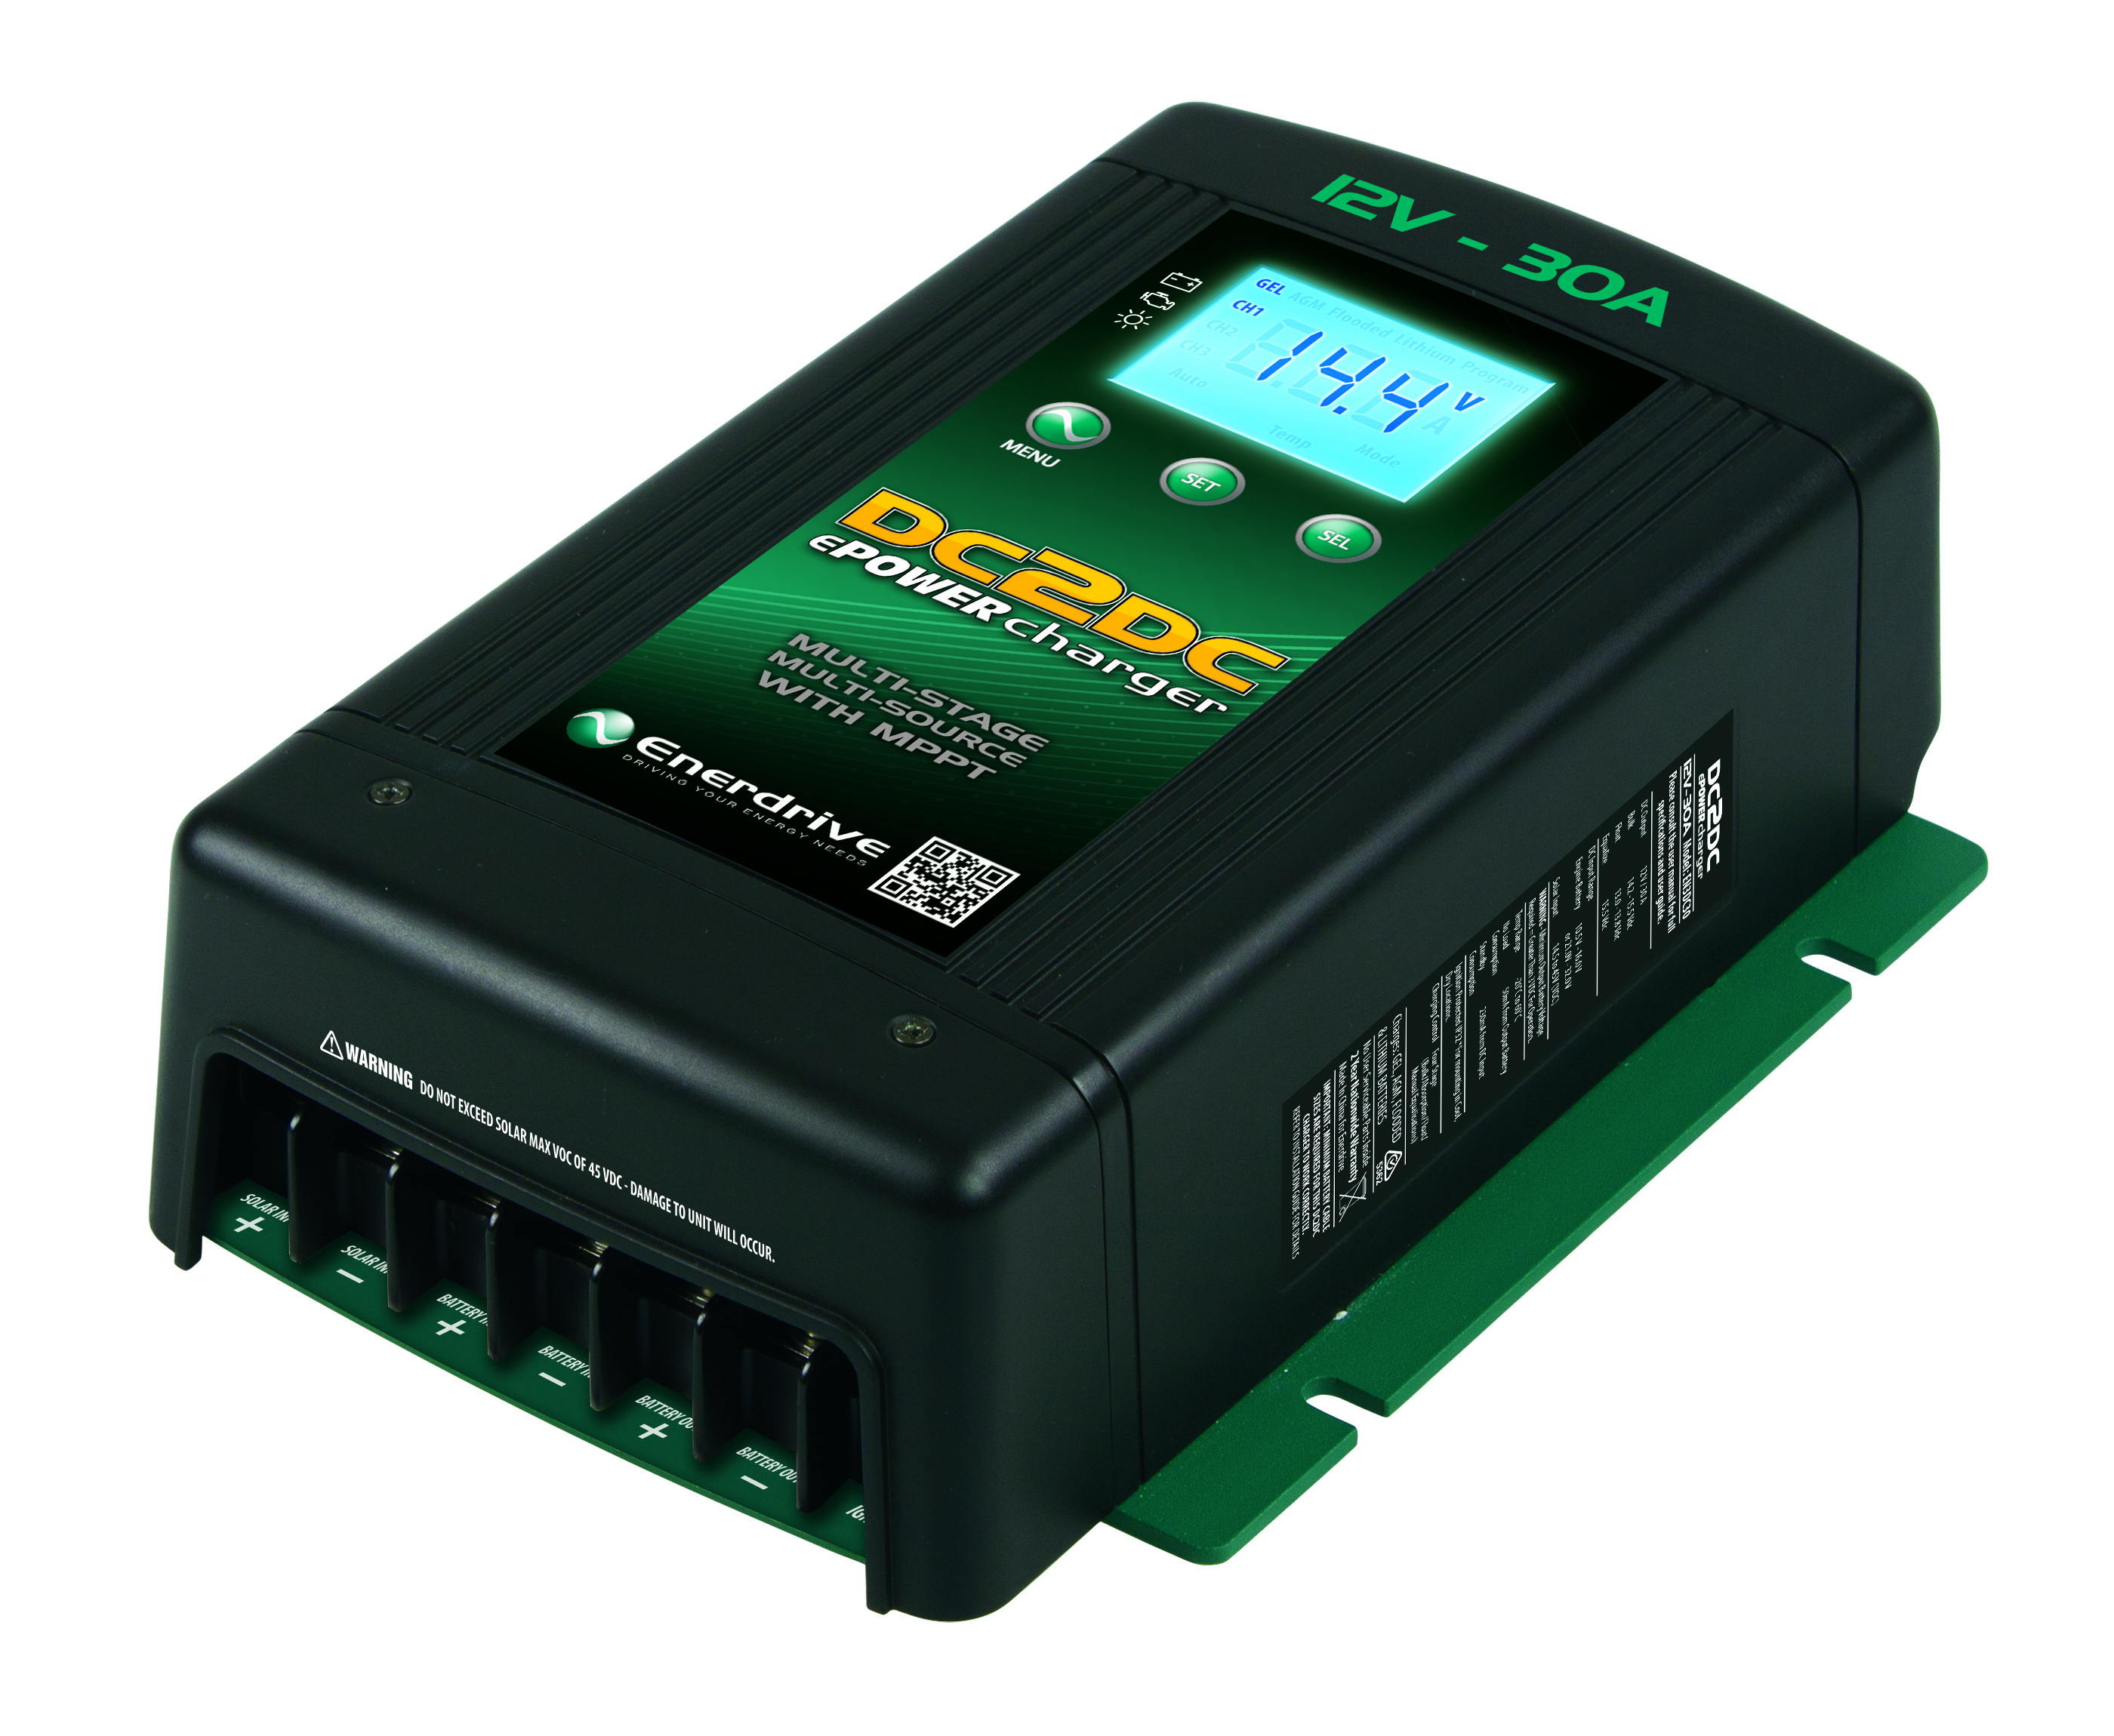 Enerdrive ePOWER DC2DC Battery Charger